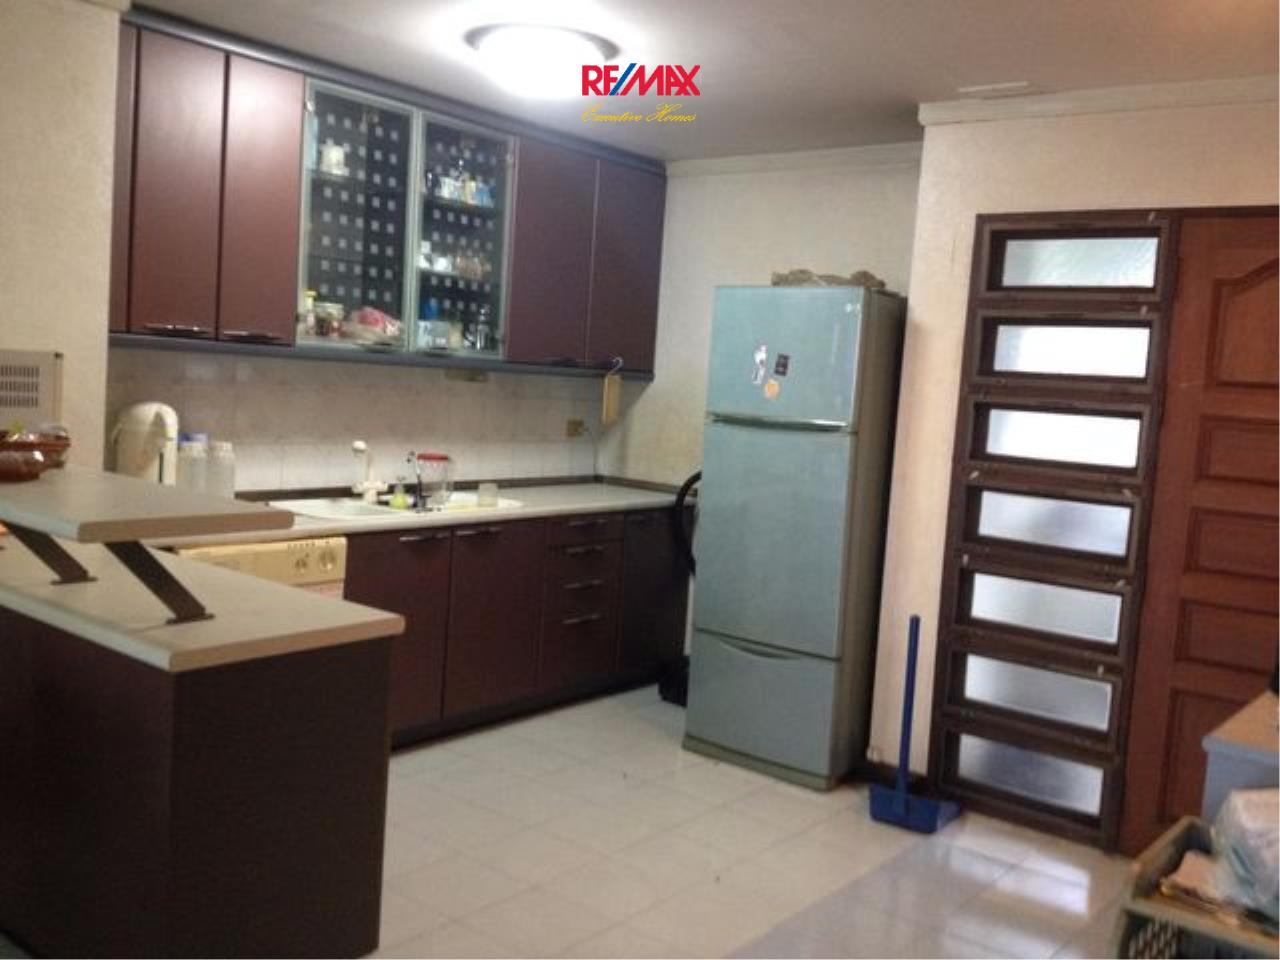 RE/MAX Executive Homes Agency's Spacious 2 Bedroom for Sale Supalai Place 39 5